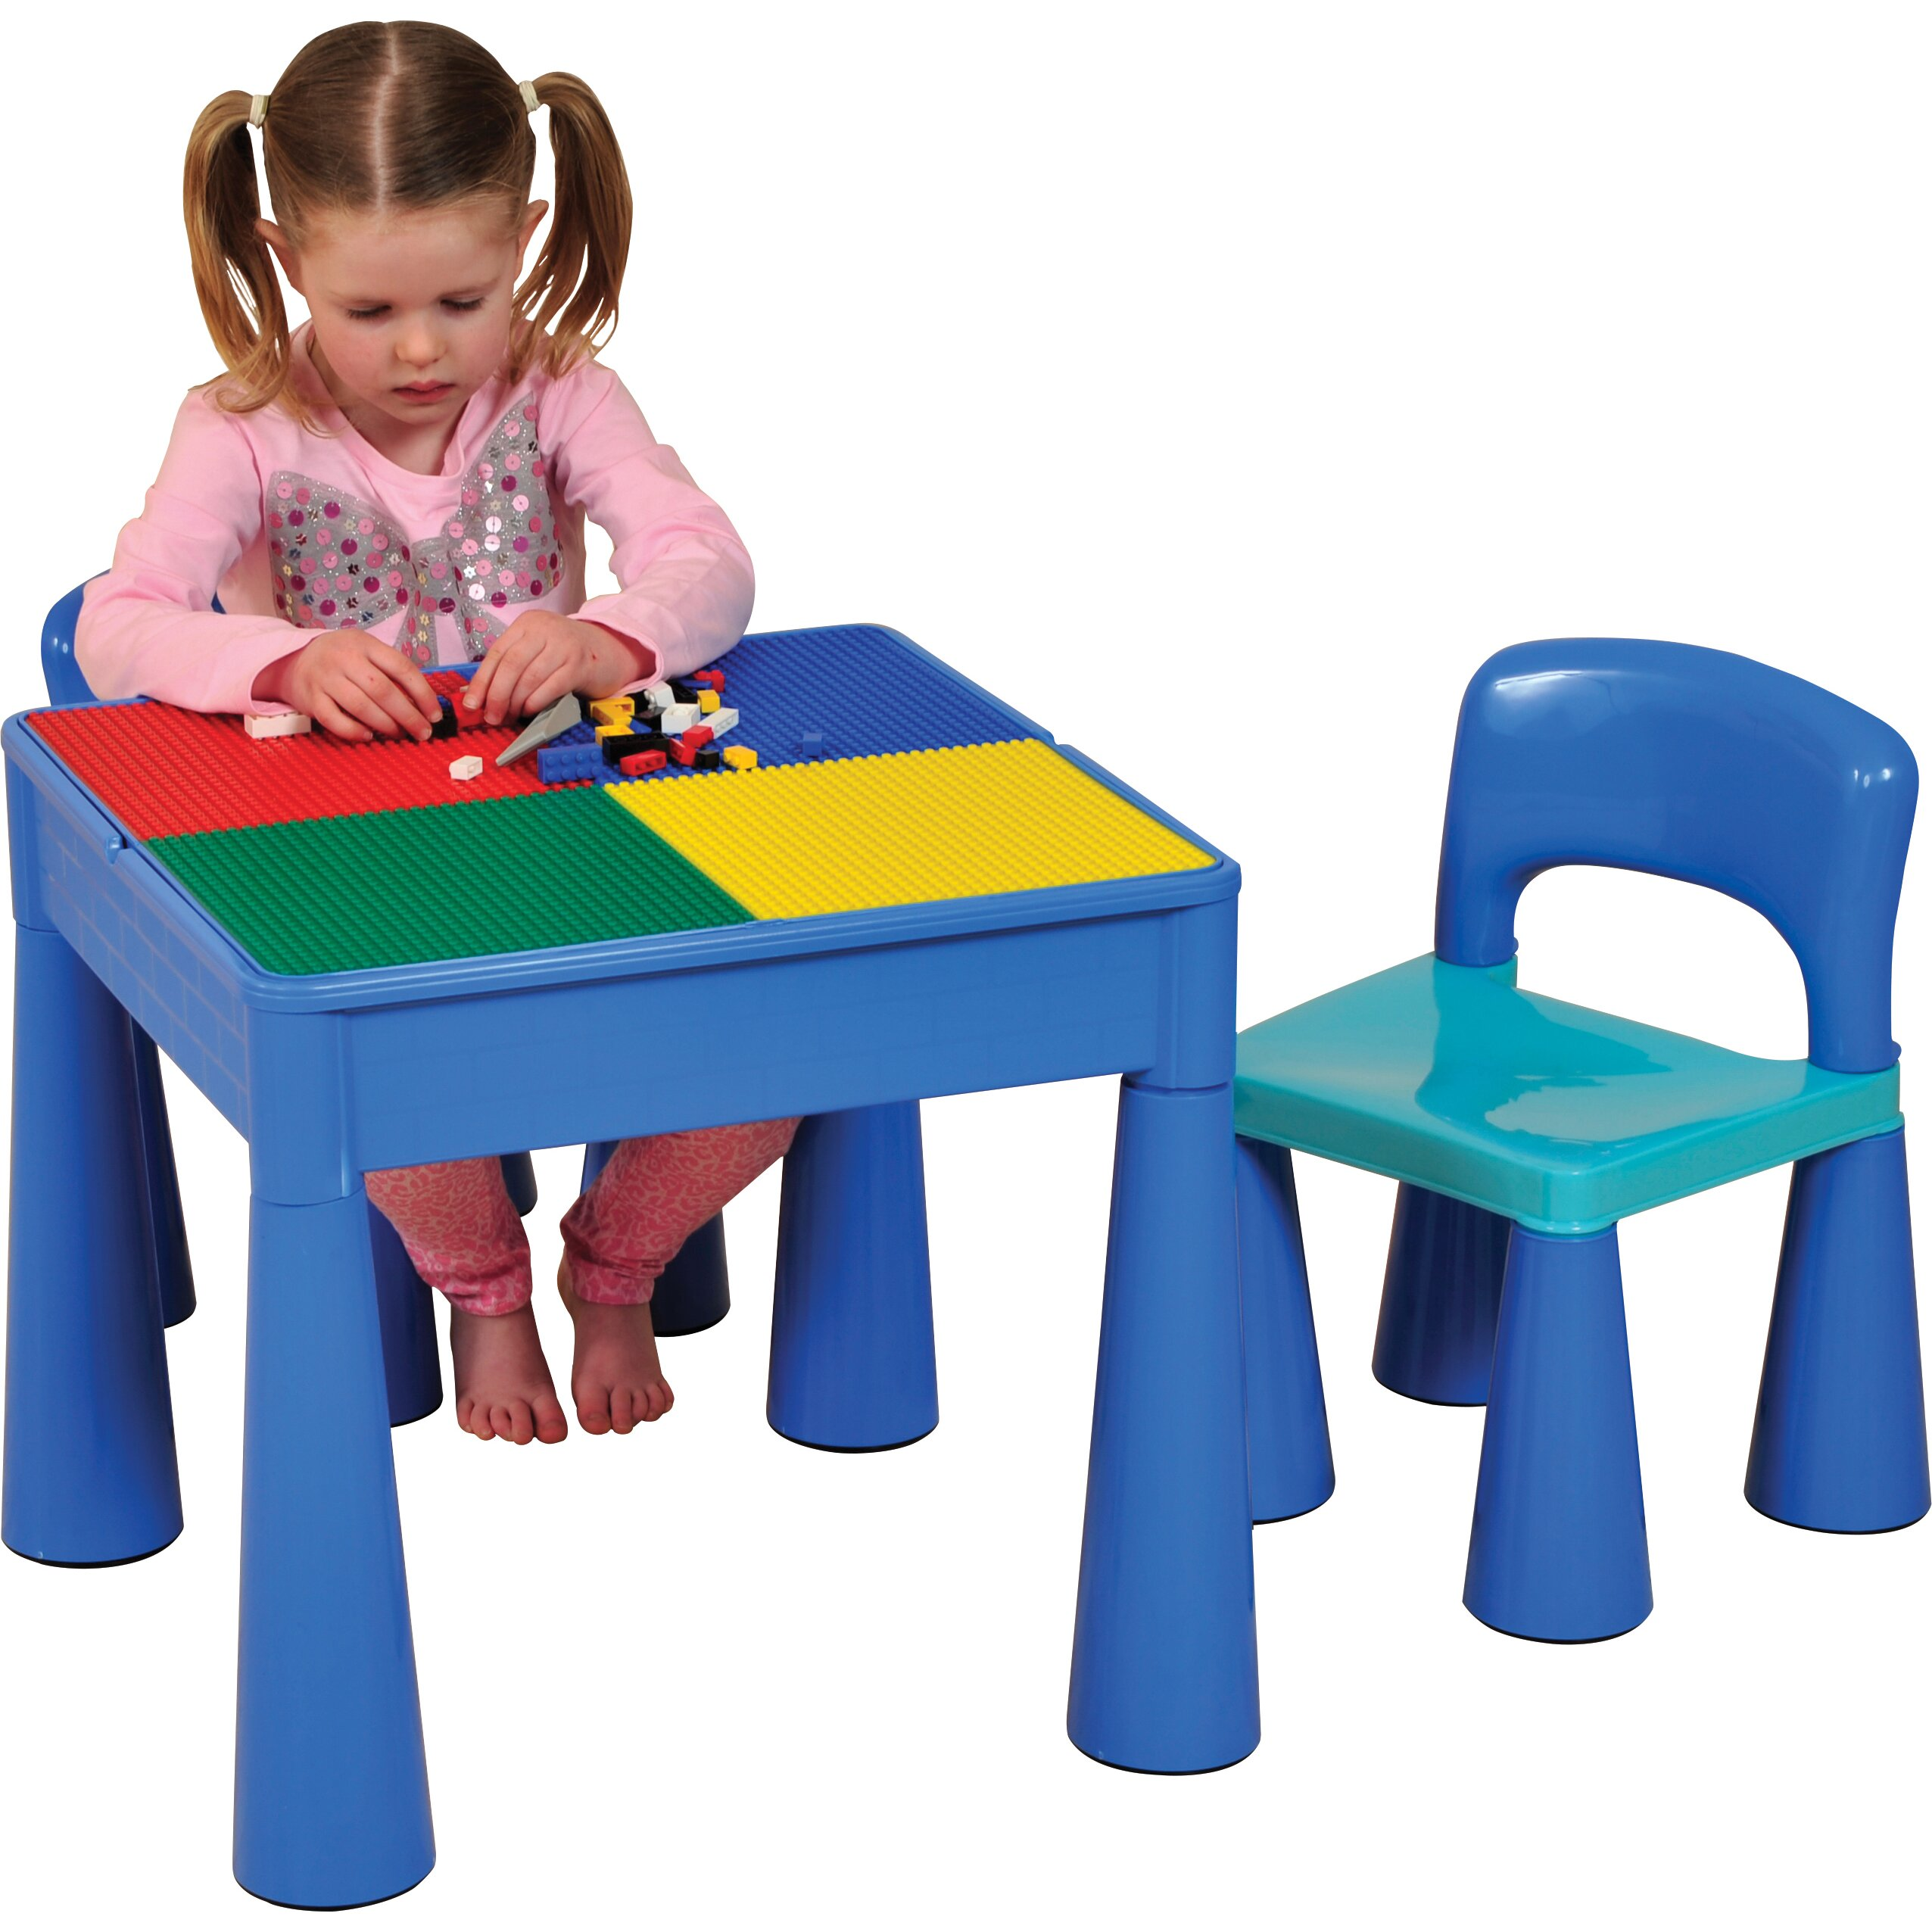 Wrigglebox Versatile Childrens 3 Piece Table and Chair